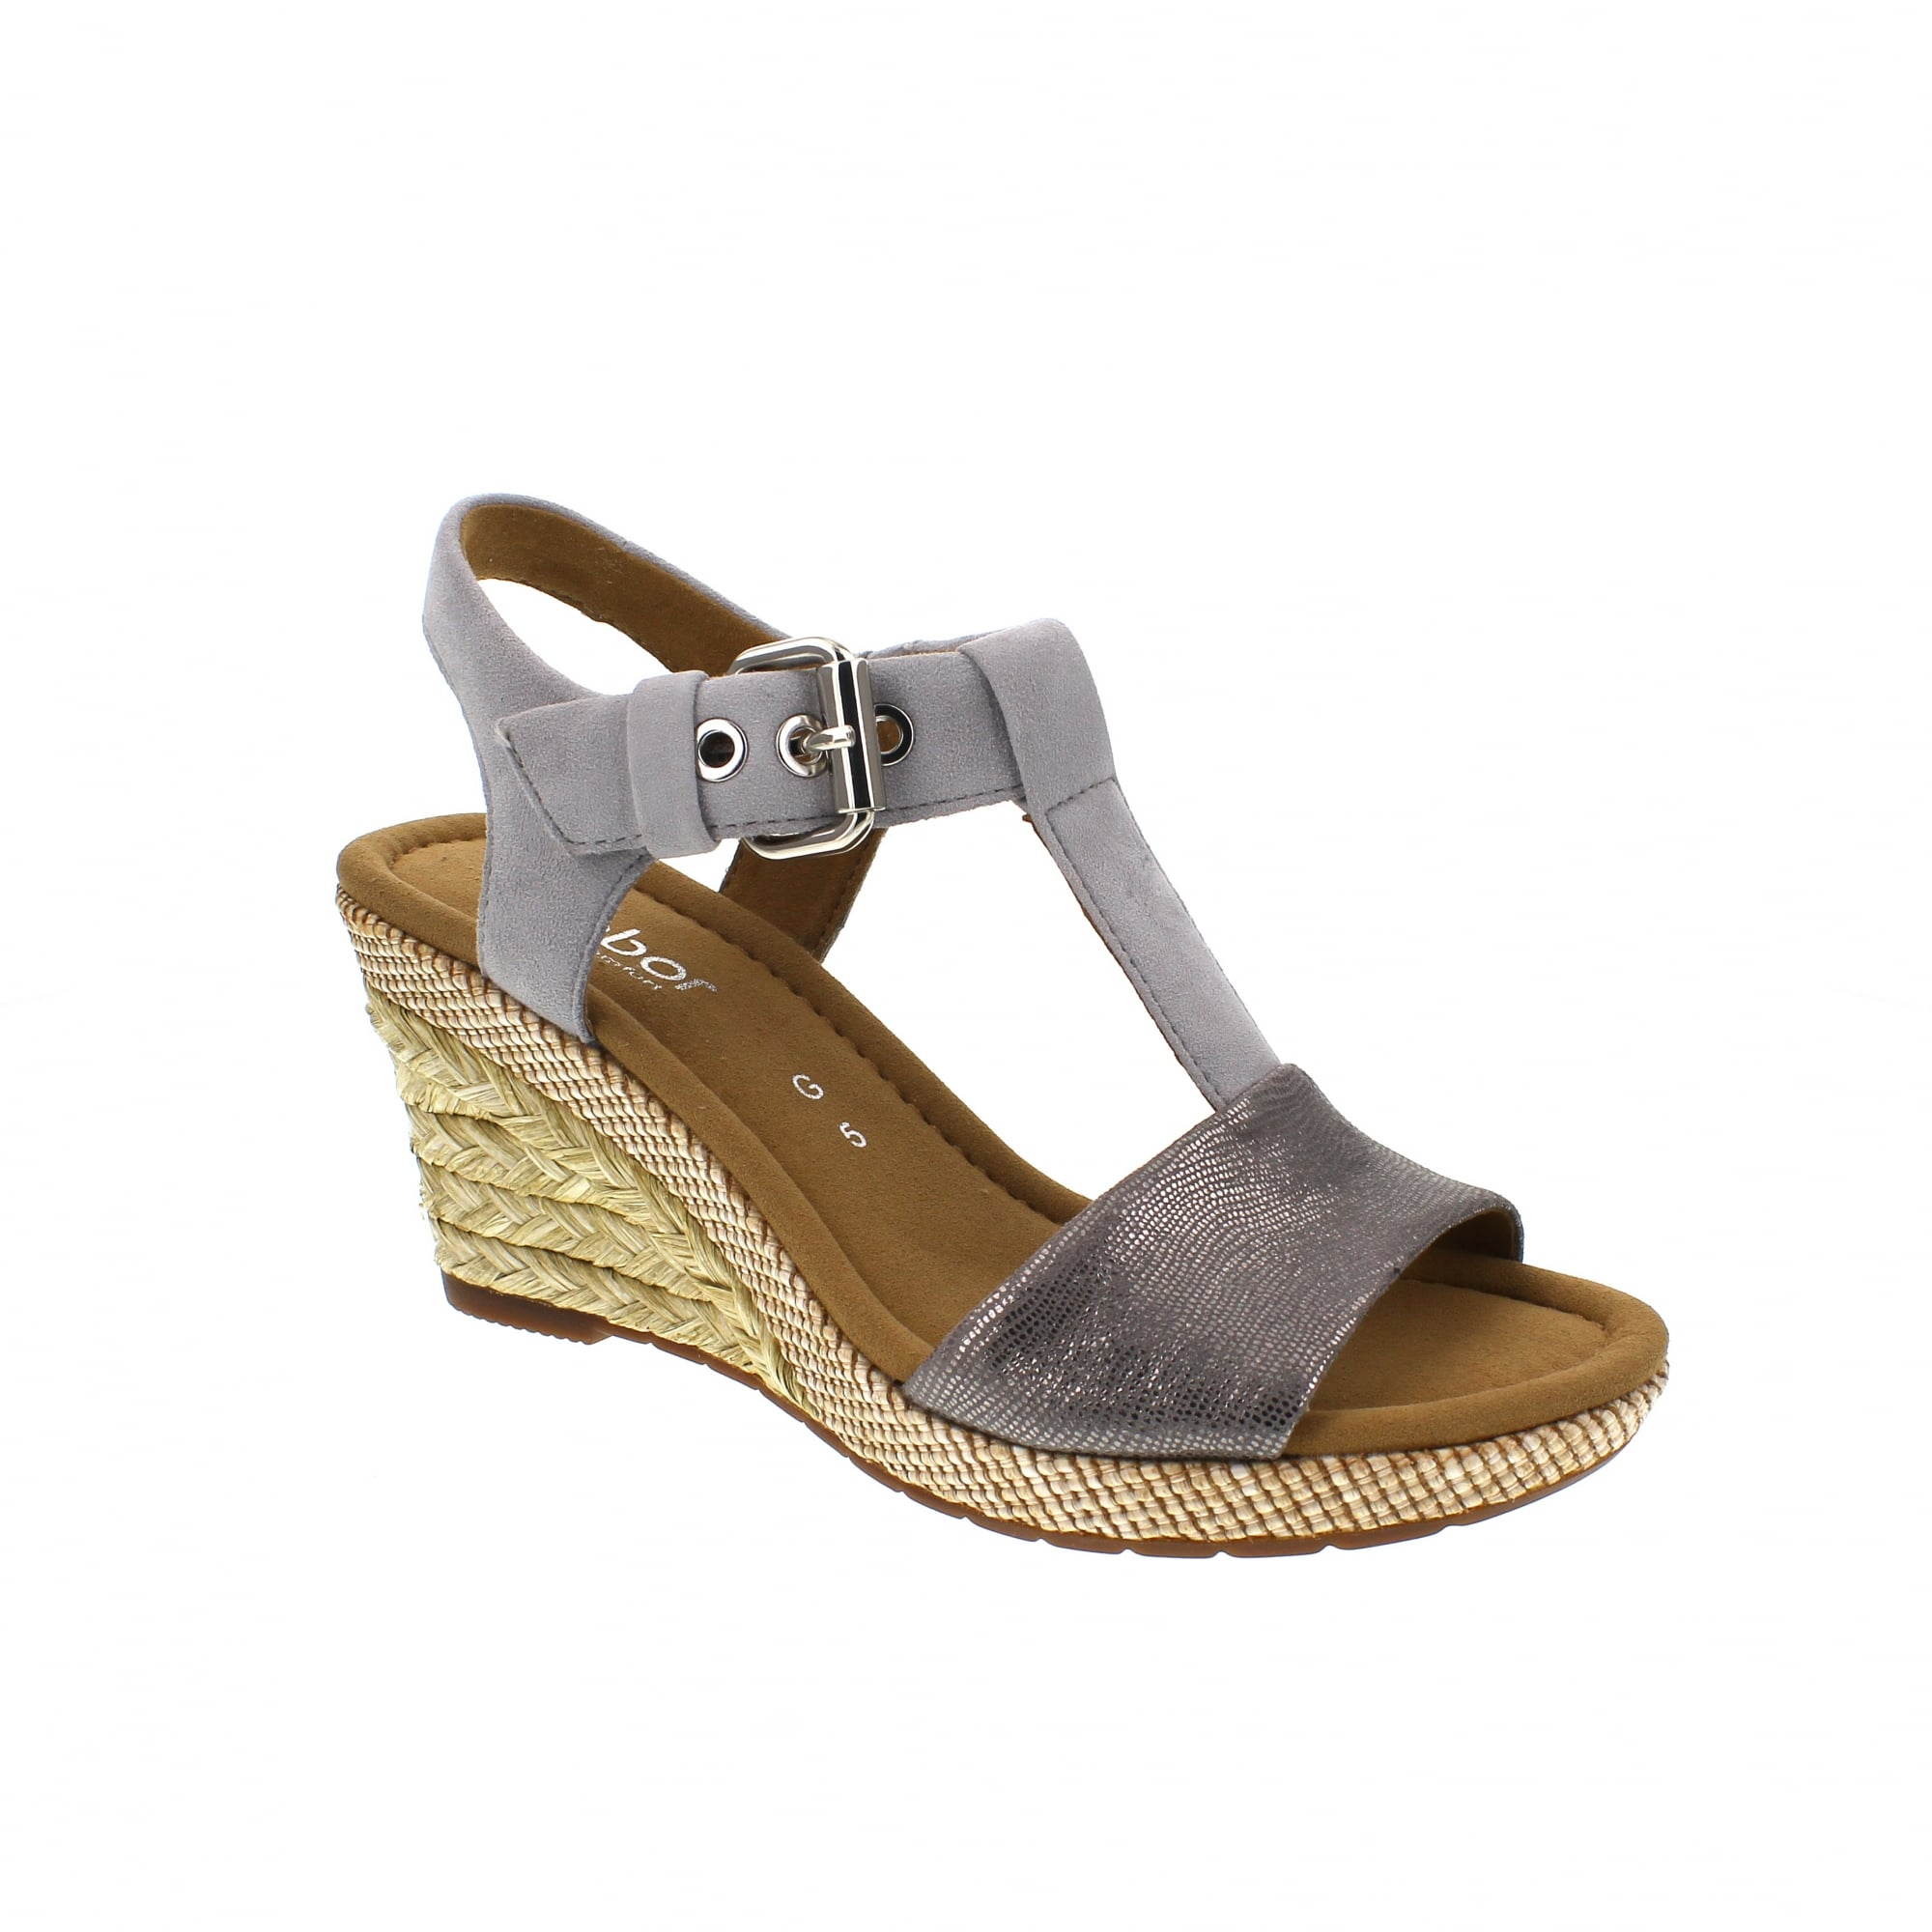 3274ca5659b43 Gabor Karen 82-824-32 Womens Sandals